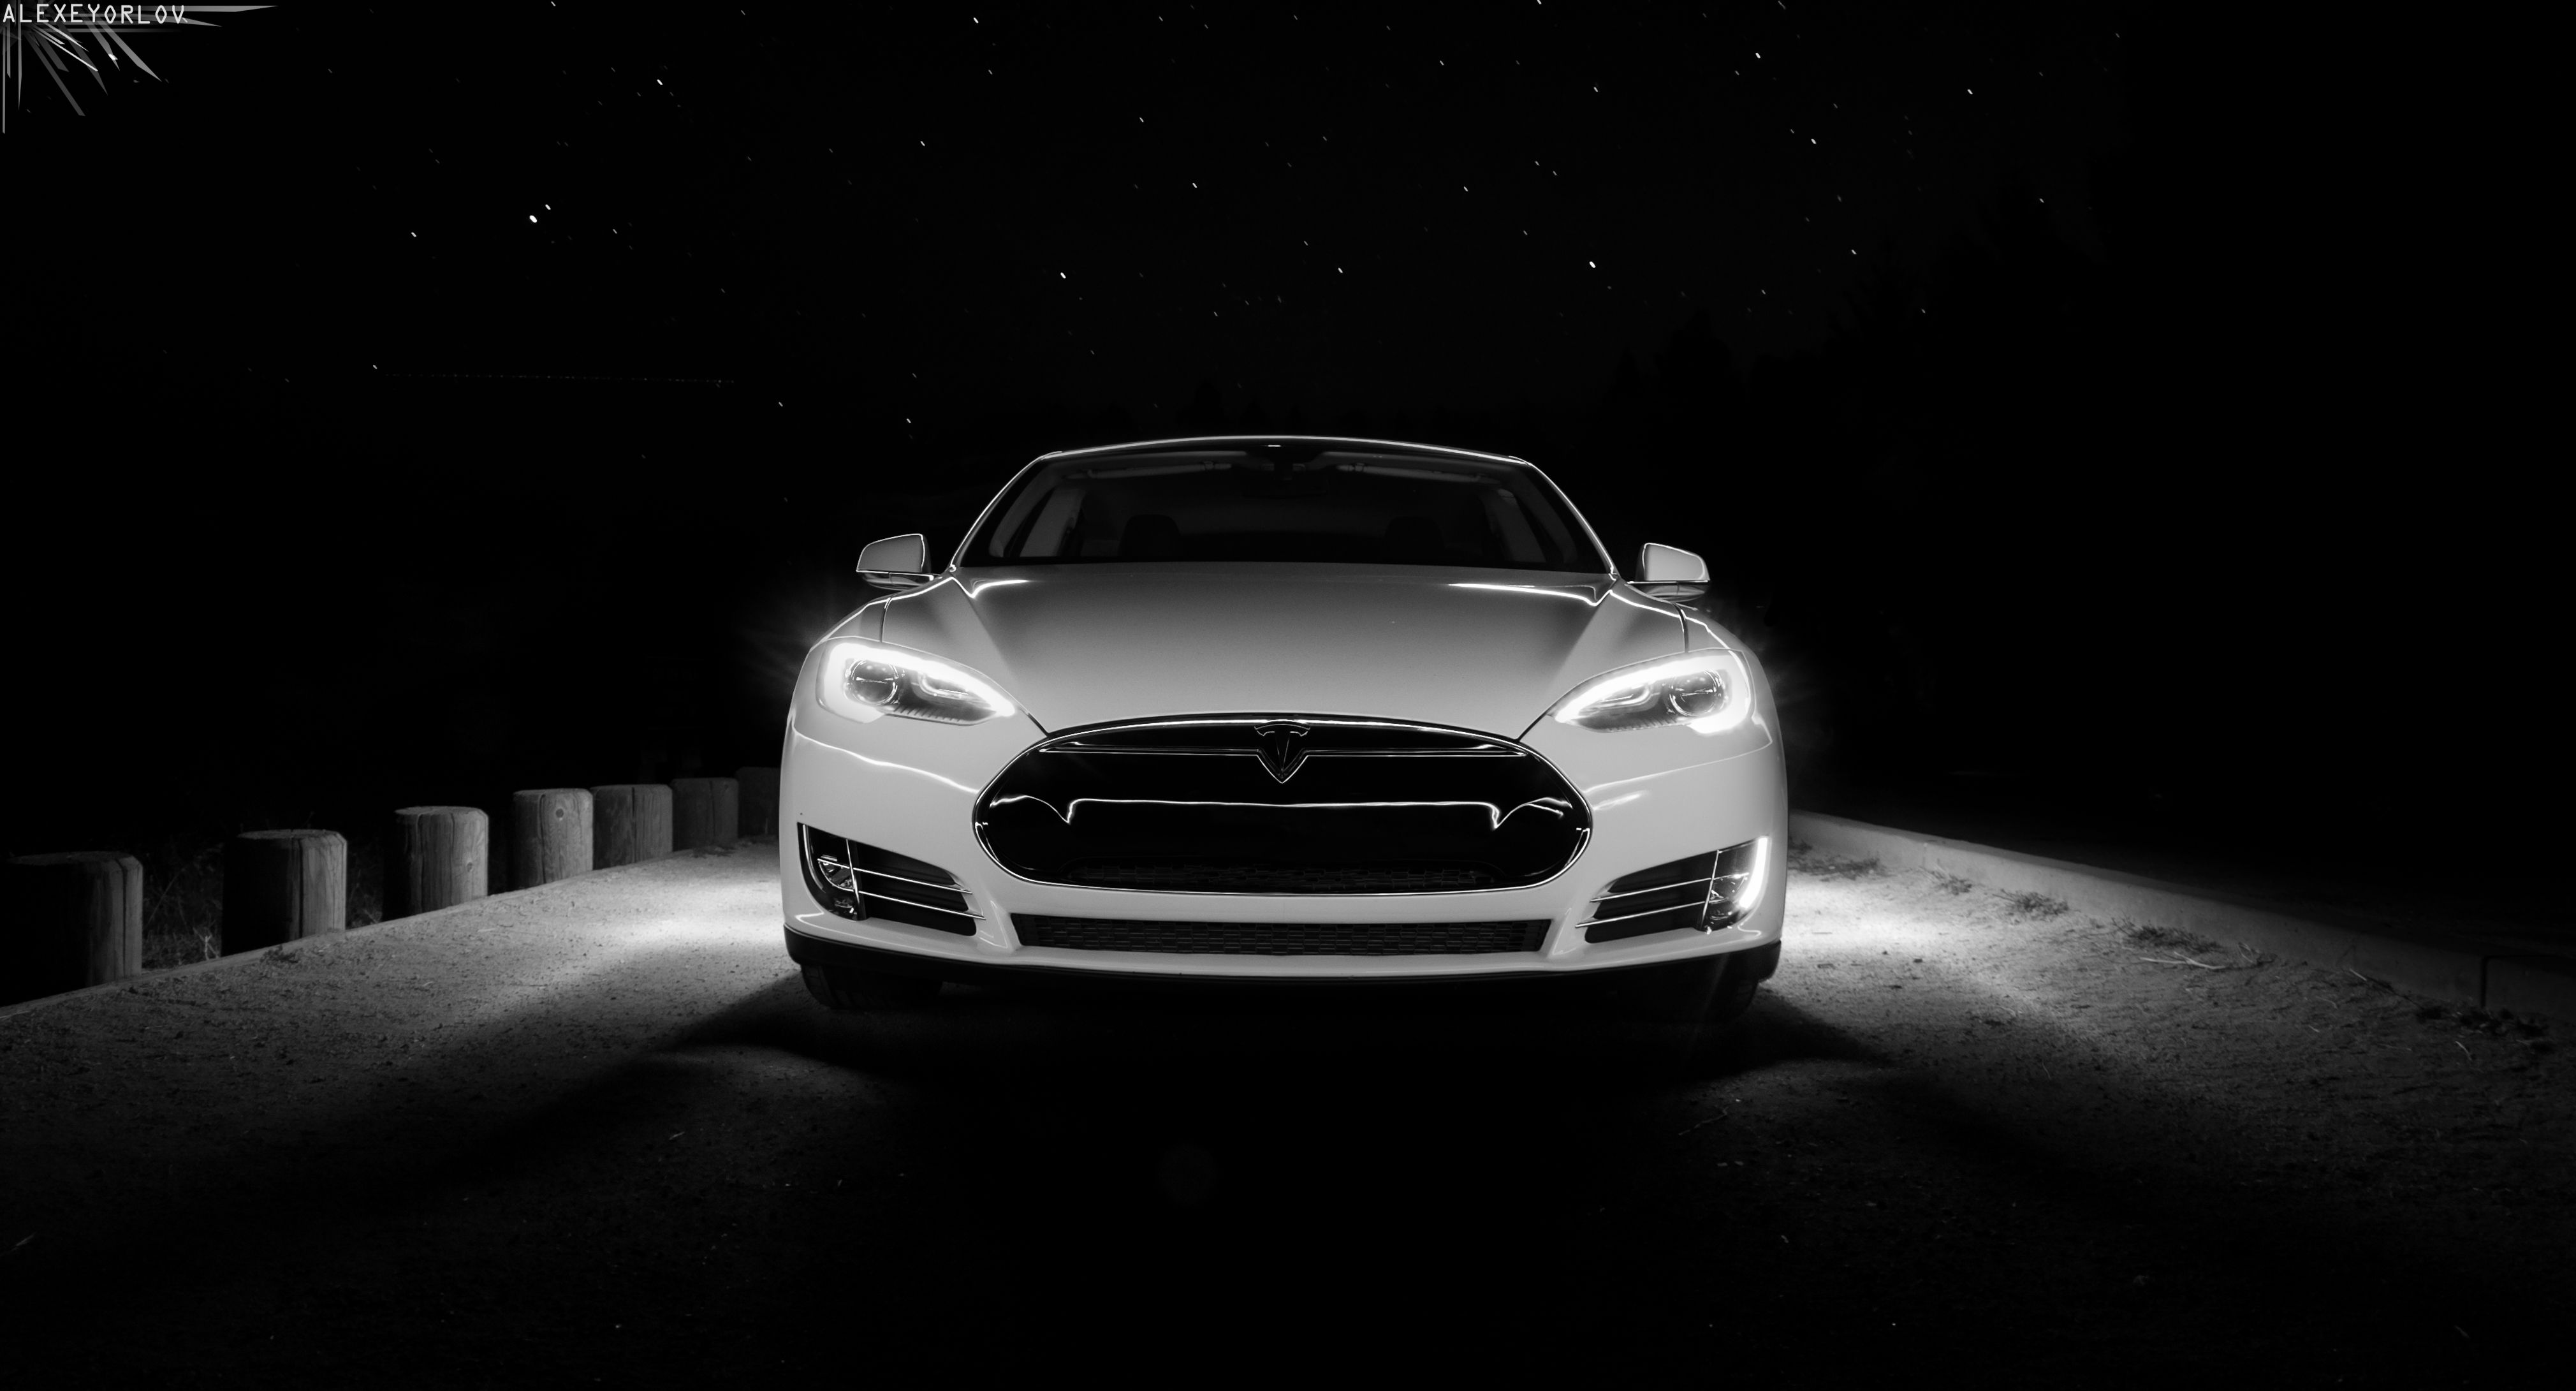 Heart Melts At The Sight Of Such Perfection Uhd Wallpaper Tesla Police Cars